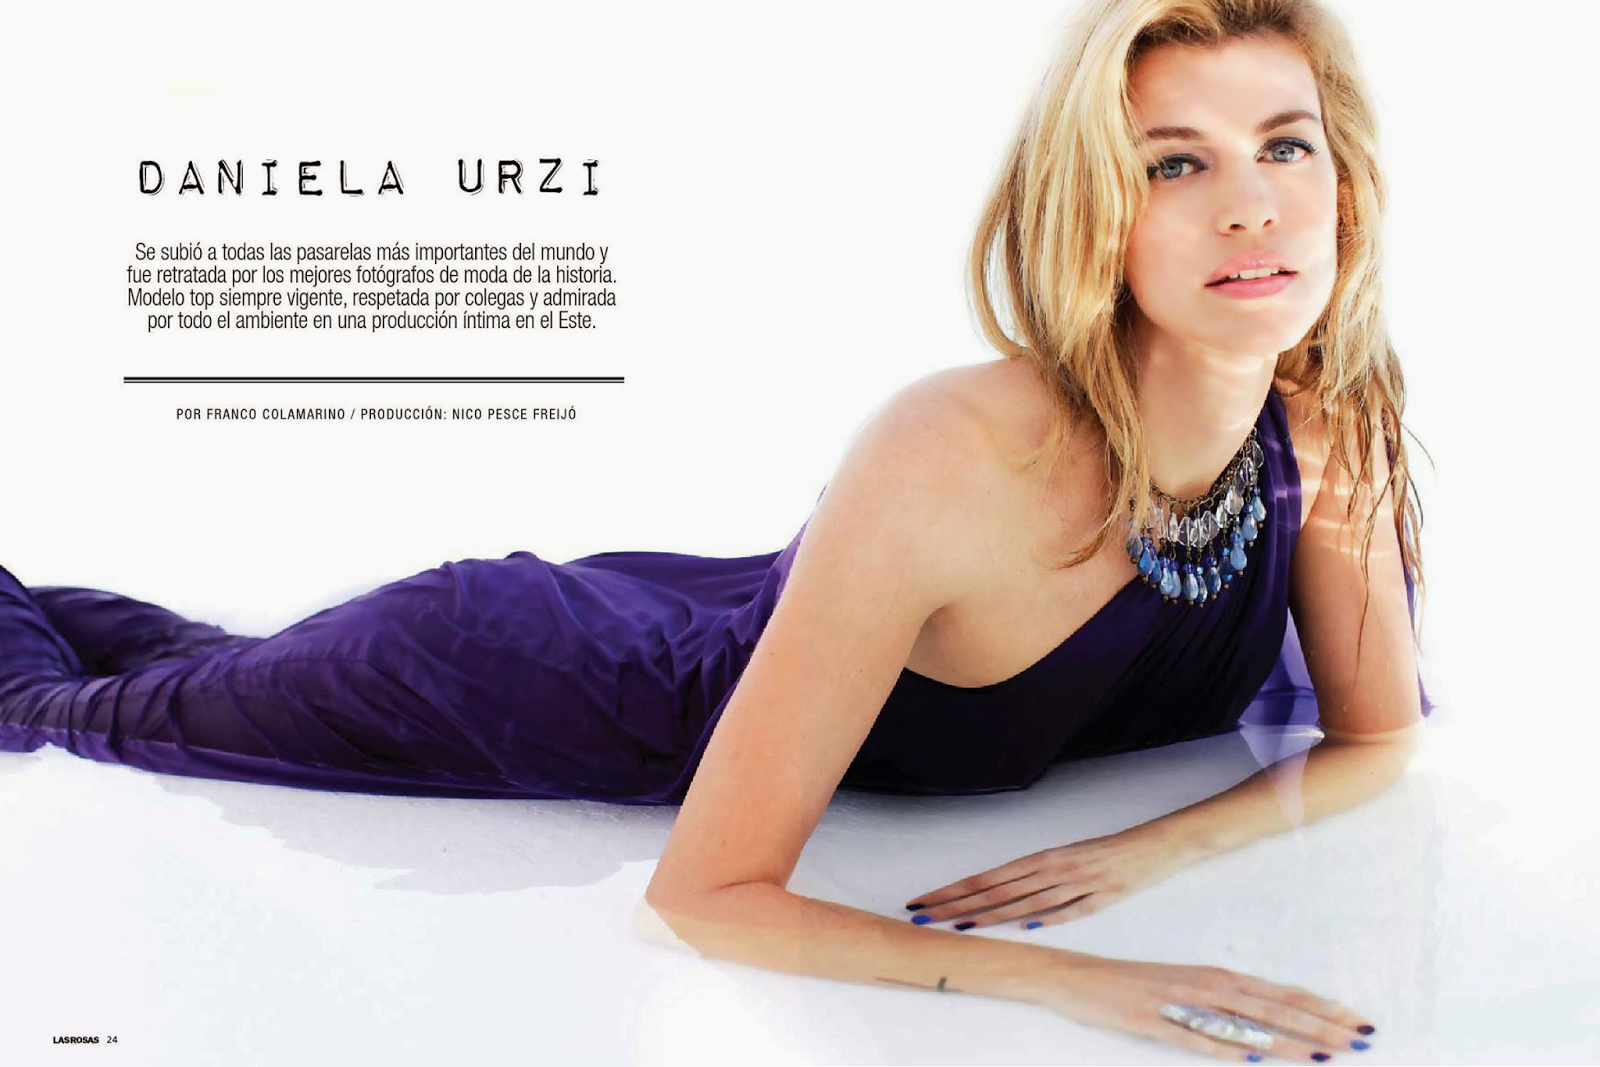 Daniela Urzi HQ Pictures Las Rosas Argentina Magazine Photoshoot February 2014 By Paloma Aballone